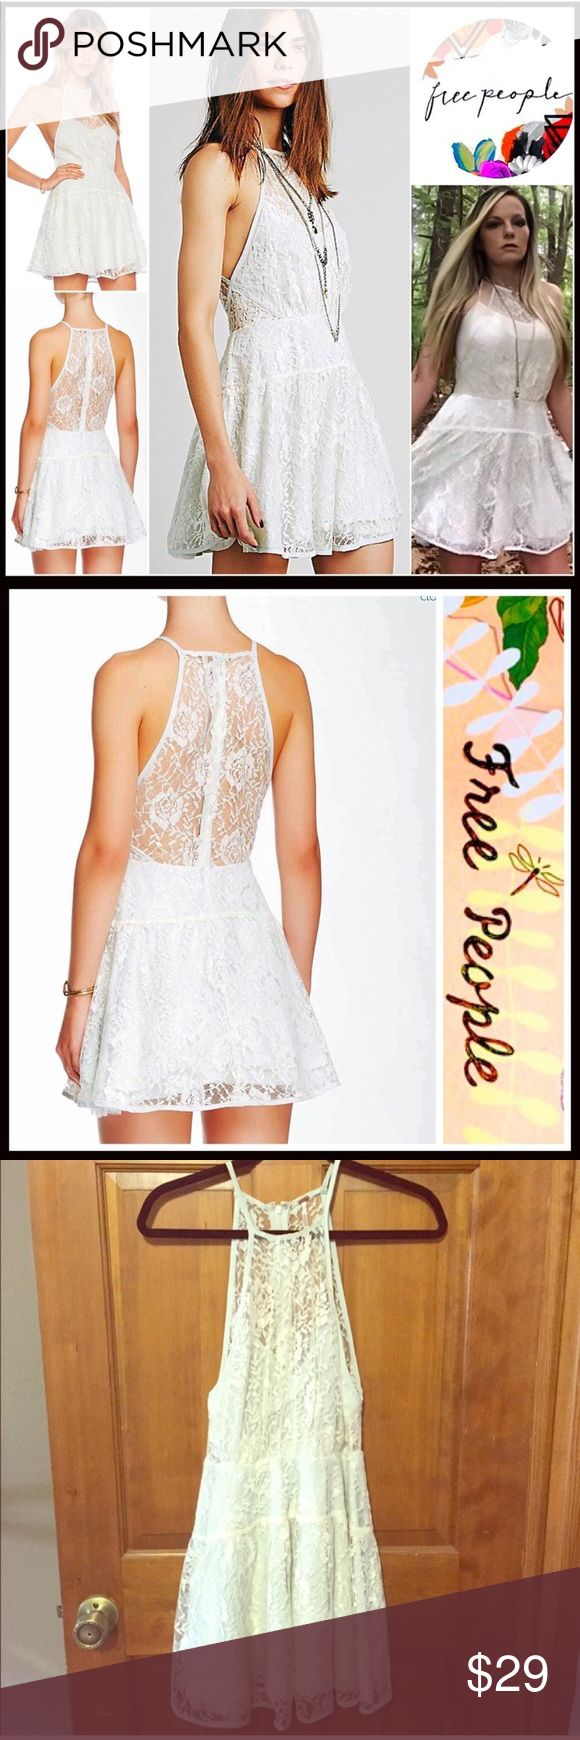 Free People White Lace Dress 0 XS Free People Dress - too big for my daughter. Re-Posh, never worn by her. Free People Dresses Mini